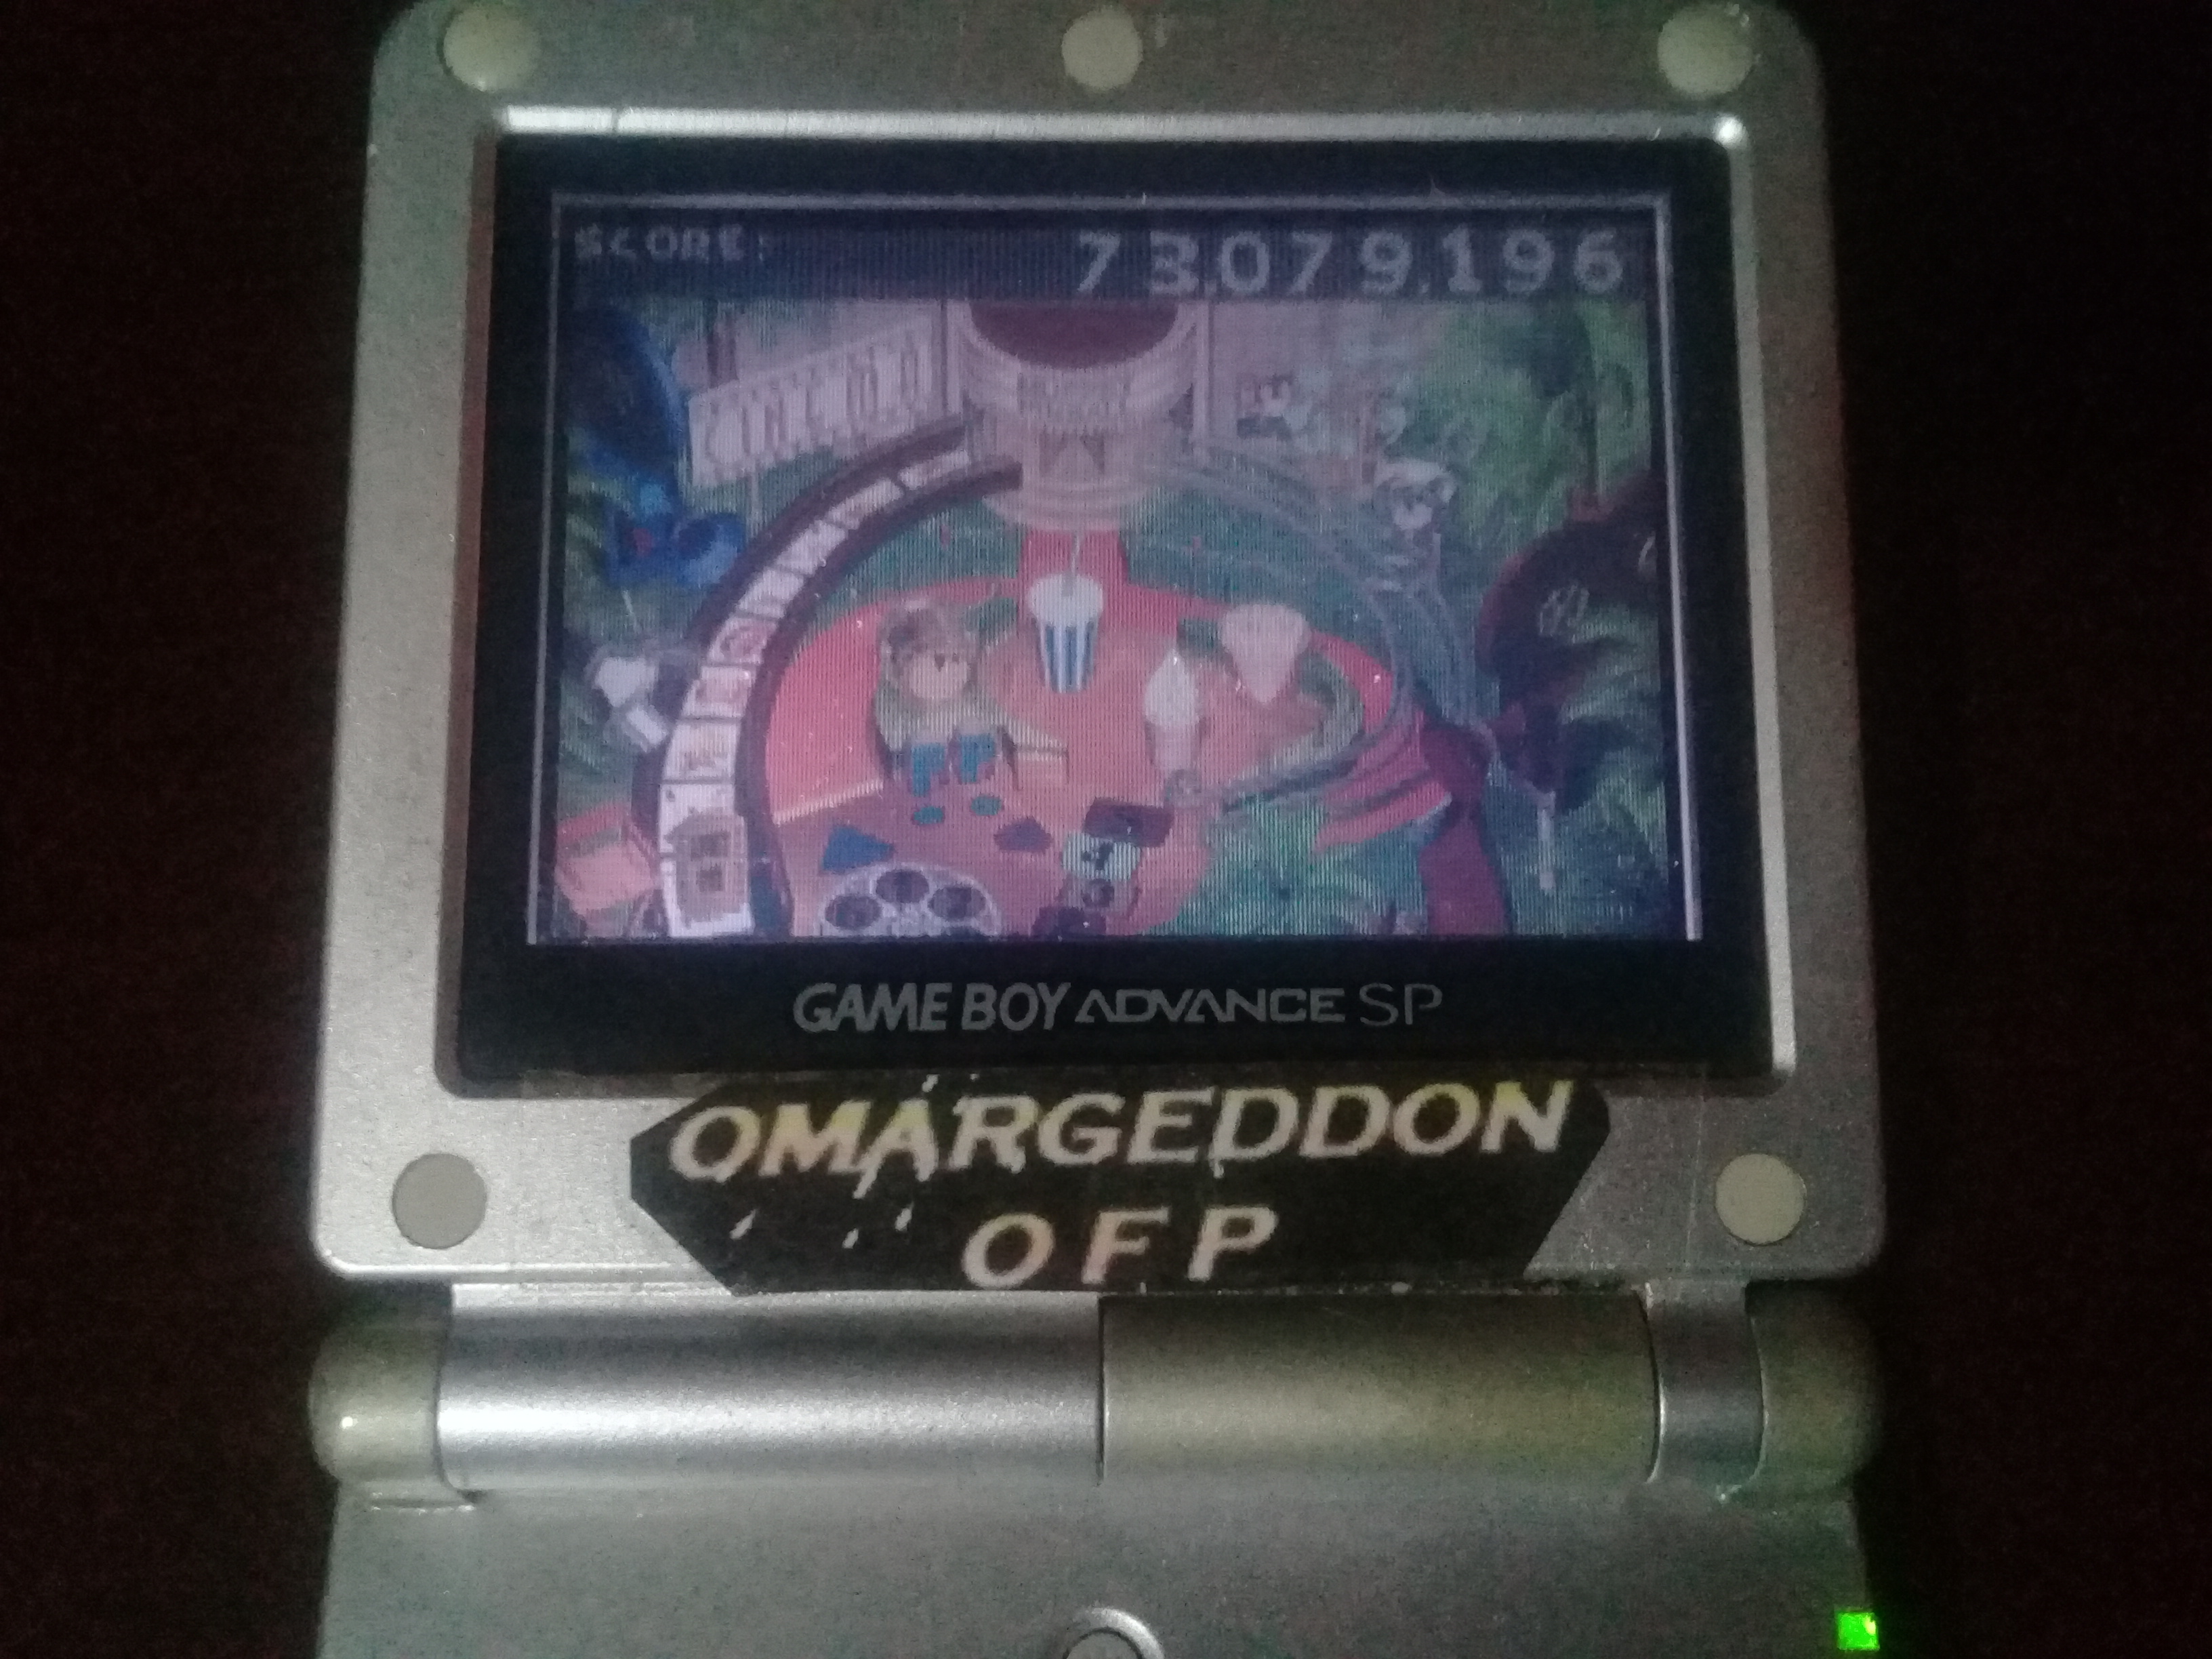 omargeddon: Muppet Pinball Mayhem: Kermit [3 Balls] (GBA) 73,079,196 points on 2019-10-06 14:35:58